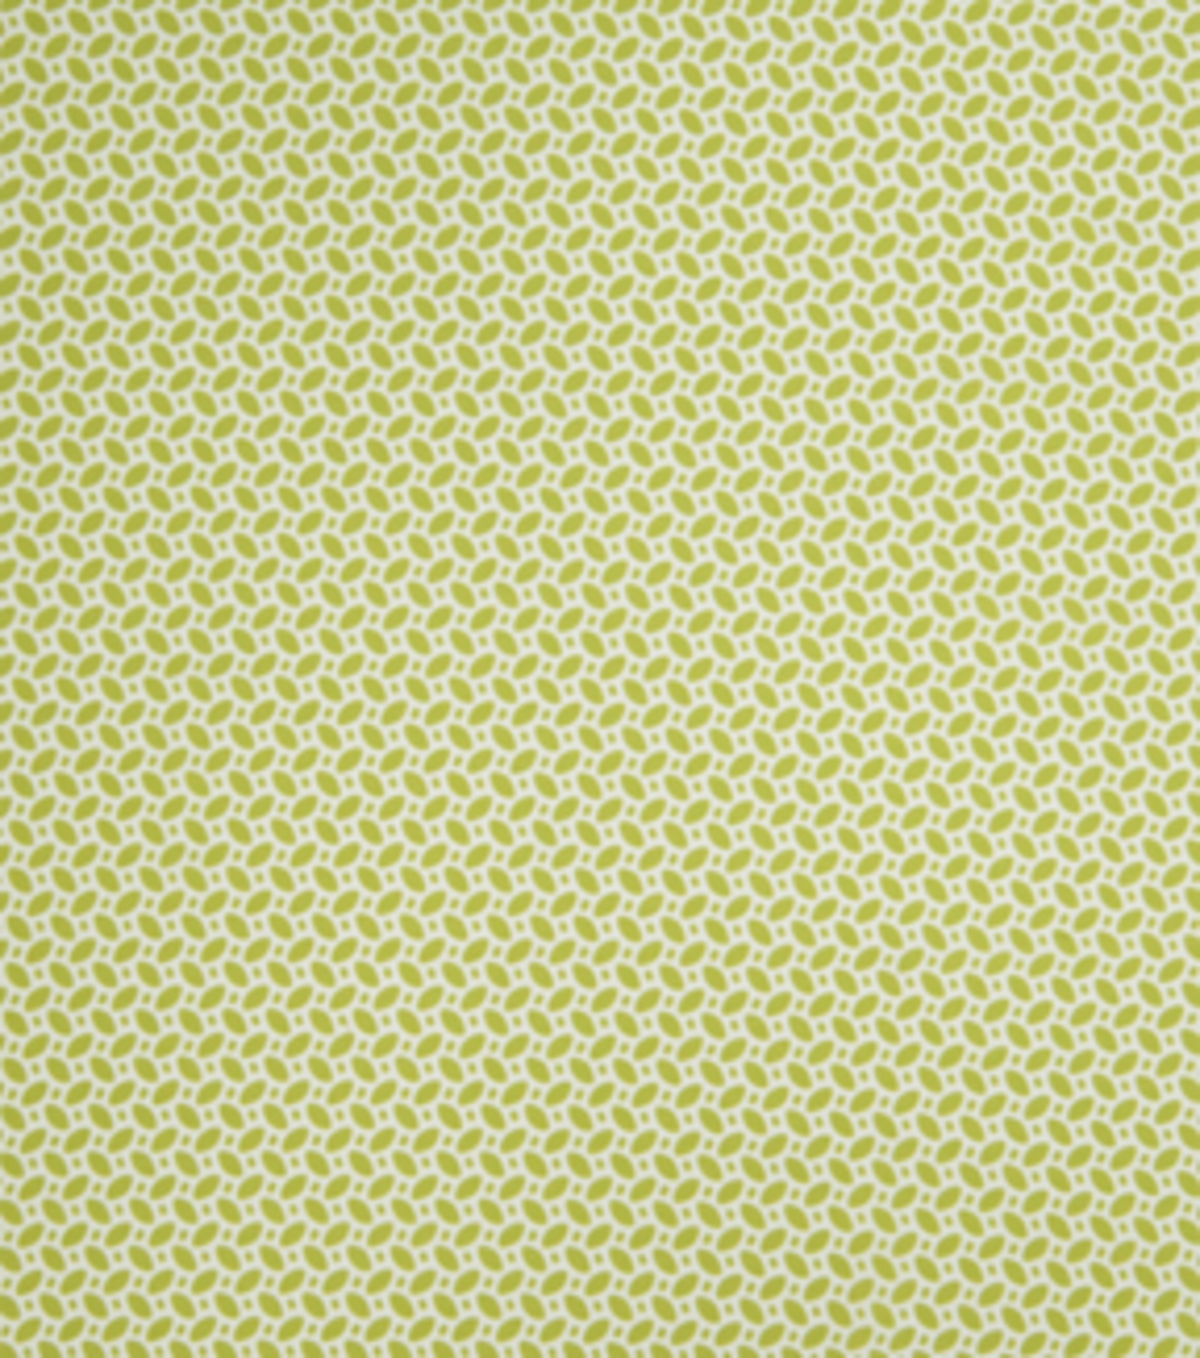 Home Decor 8\u0022x8\u0022 Fabric Swatch-Eaton Square Gloria   Lawn Geometric